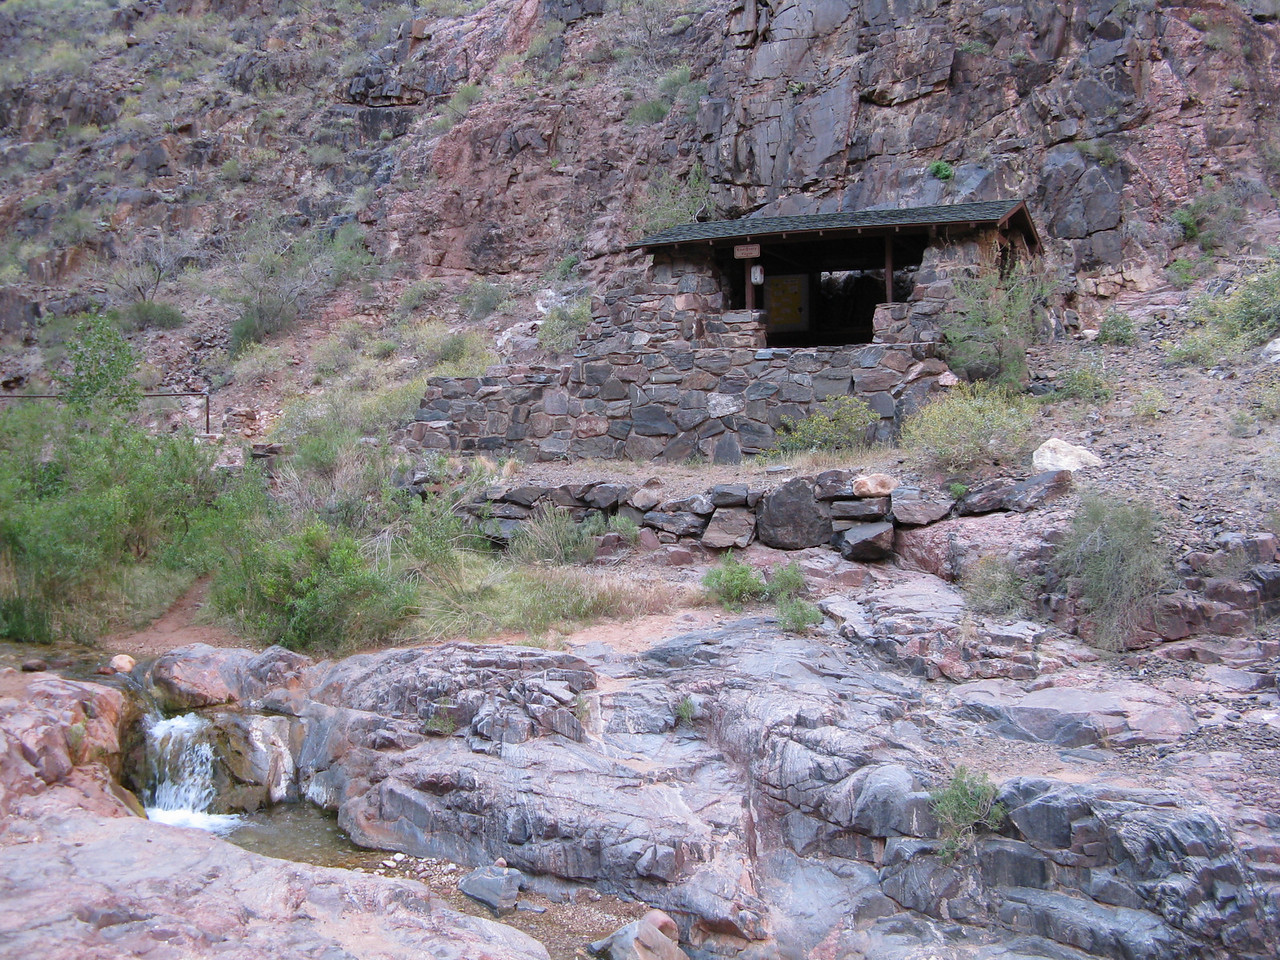 1.9 miles, 2480 feet of elevation, 30 feet of elevation gain.  The River Resthouse provides shade when the sun is high in the sky.  On this early morning, the resthouse itself was shaded by the canyon walls.  Pipe Creek gurgles in the foreground.